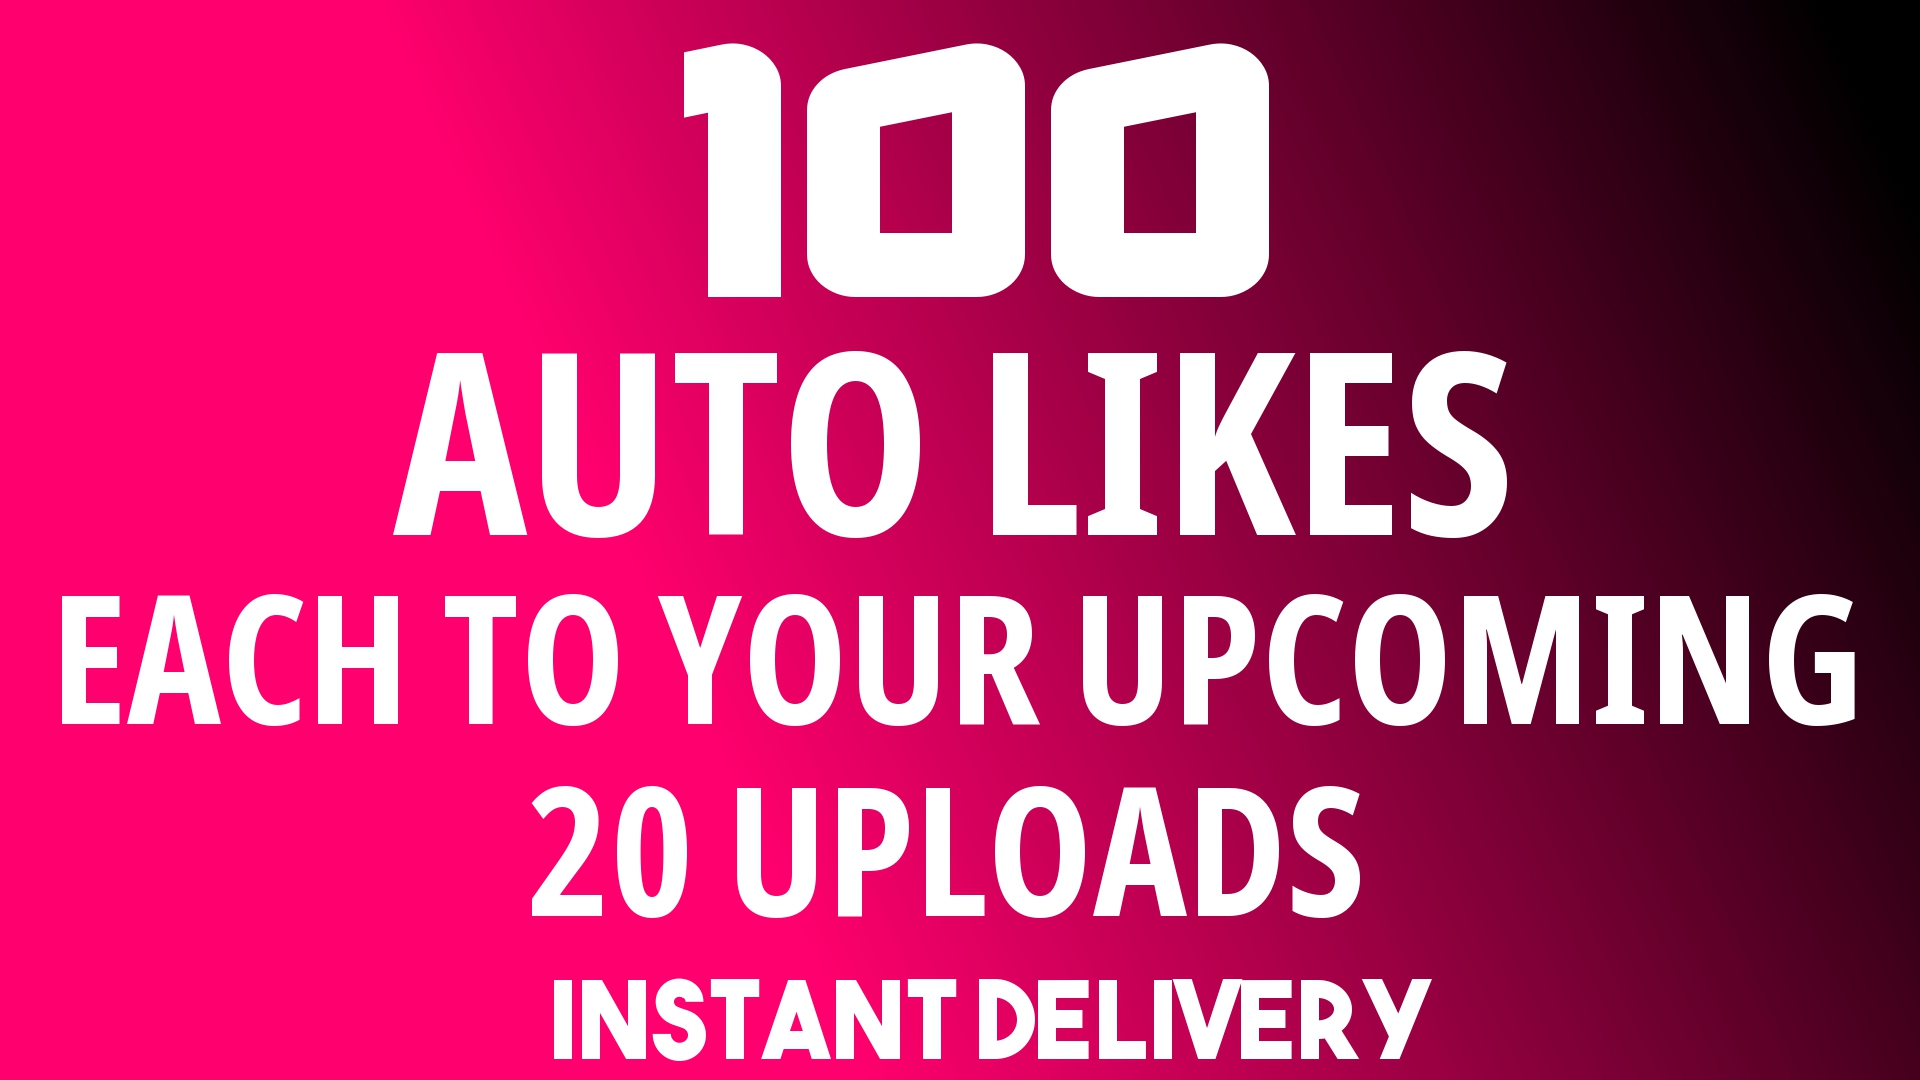 Instant Add Automatically 100+ Likes Each 20 Upcoming Content